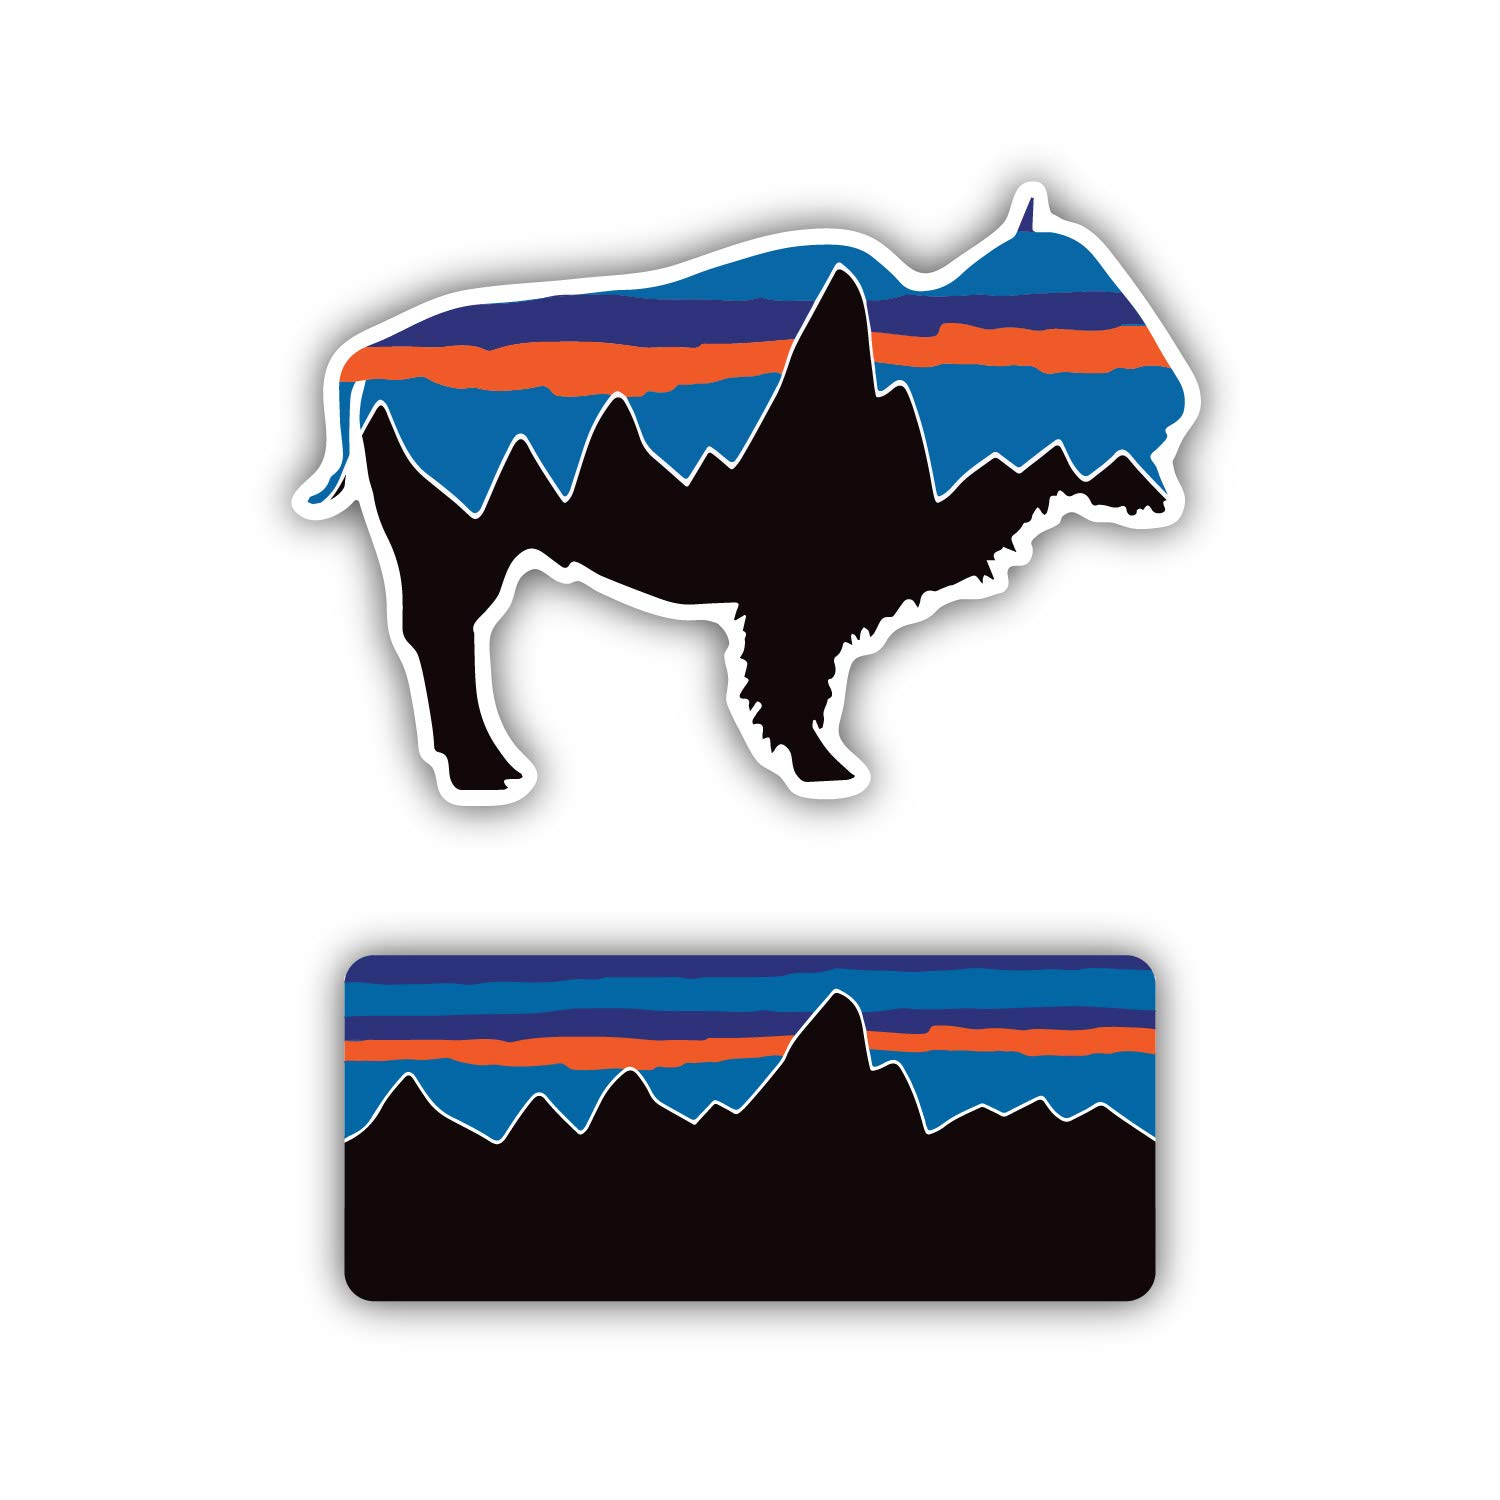 Patagonia Buffalo Combo Decal Sticker for Water Bottles 2pk Premium Matte Waterproof Vinyl